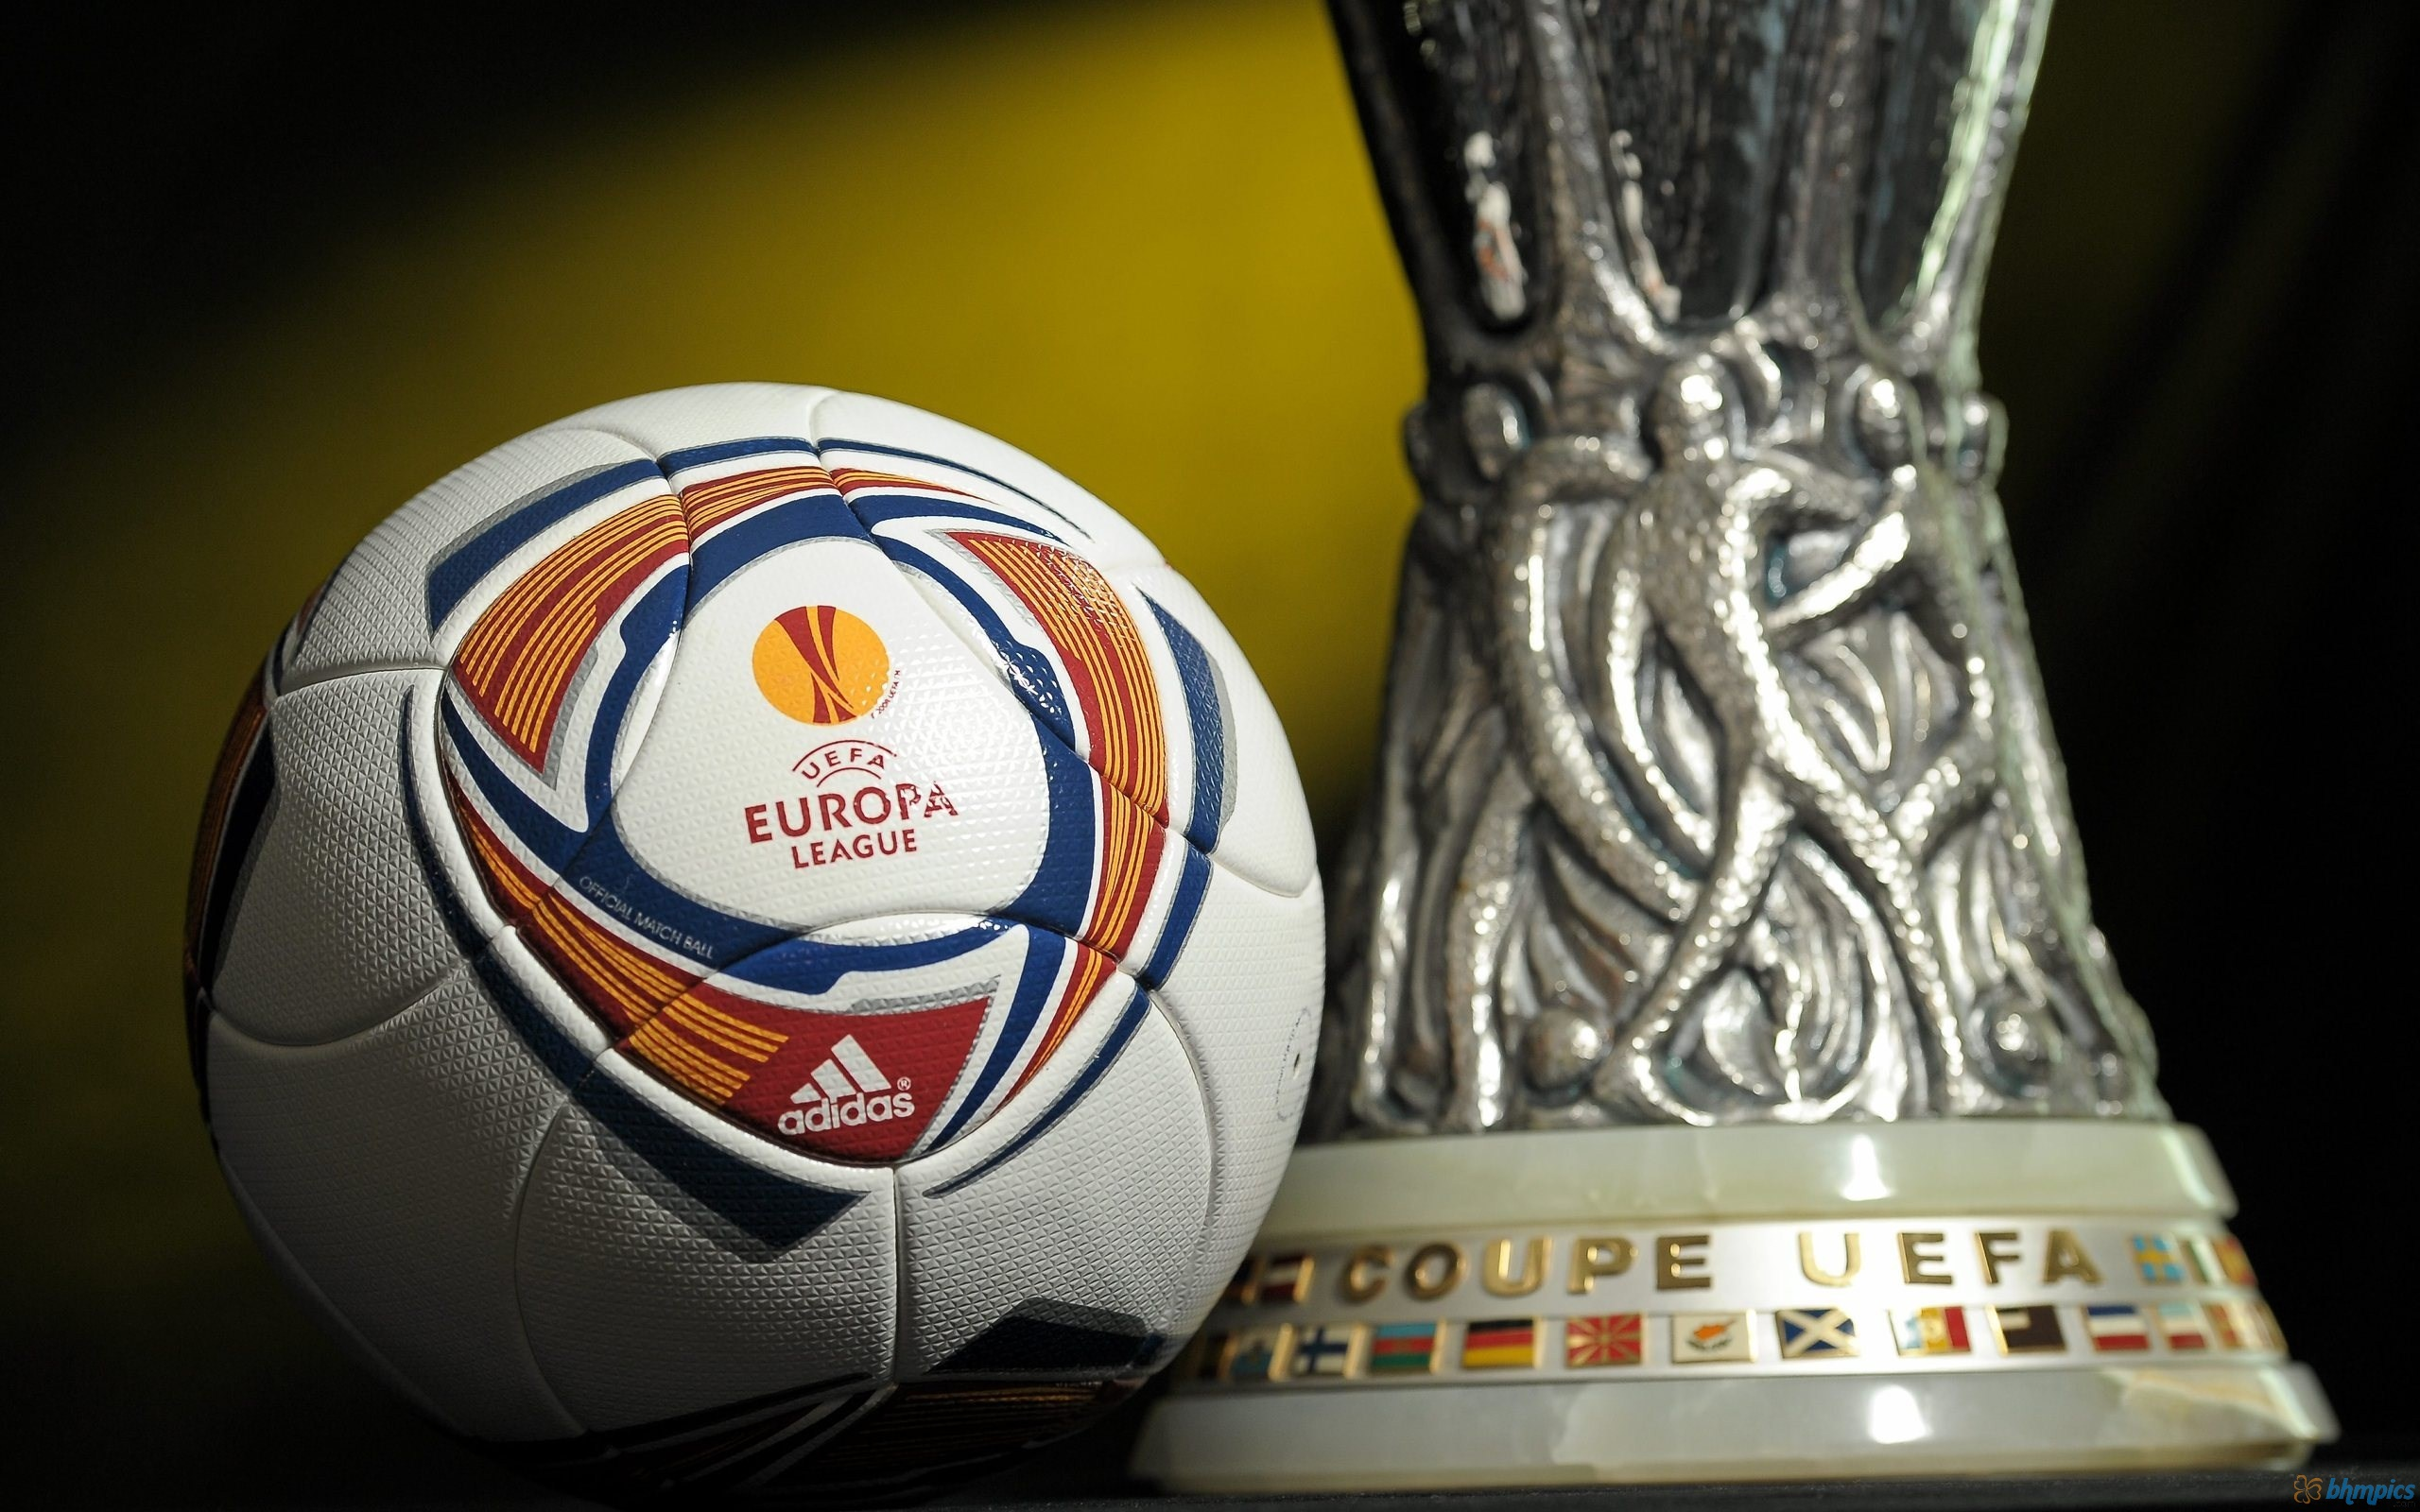 Europa League 2014-15: Calendario e primi risultati